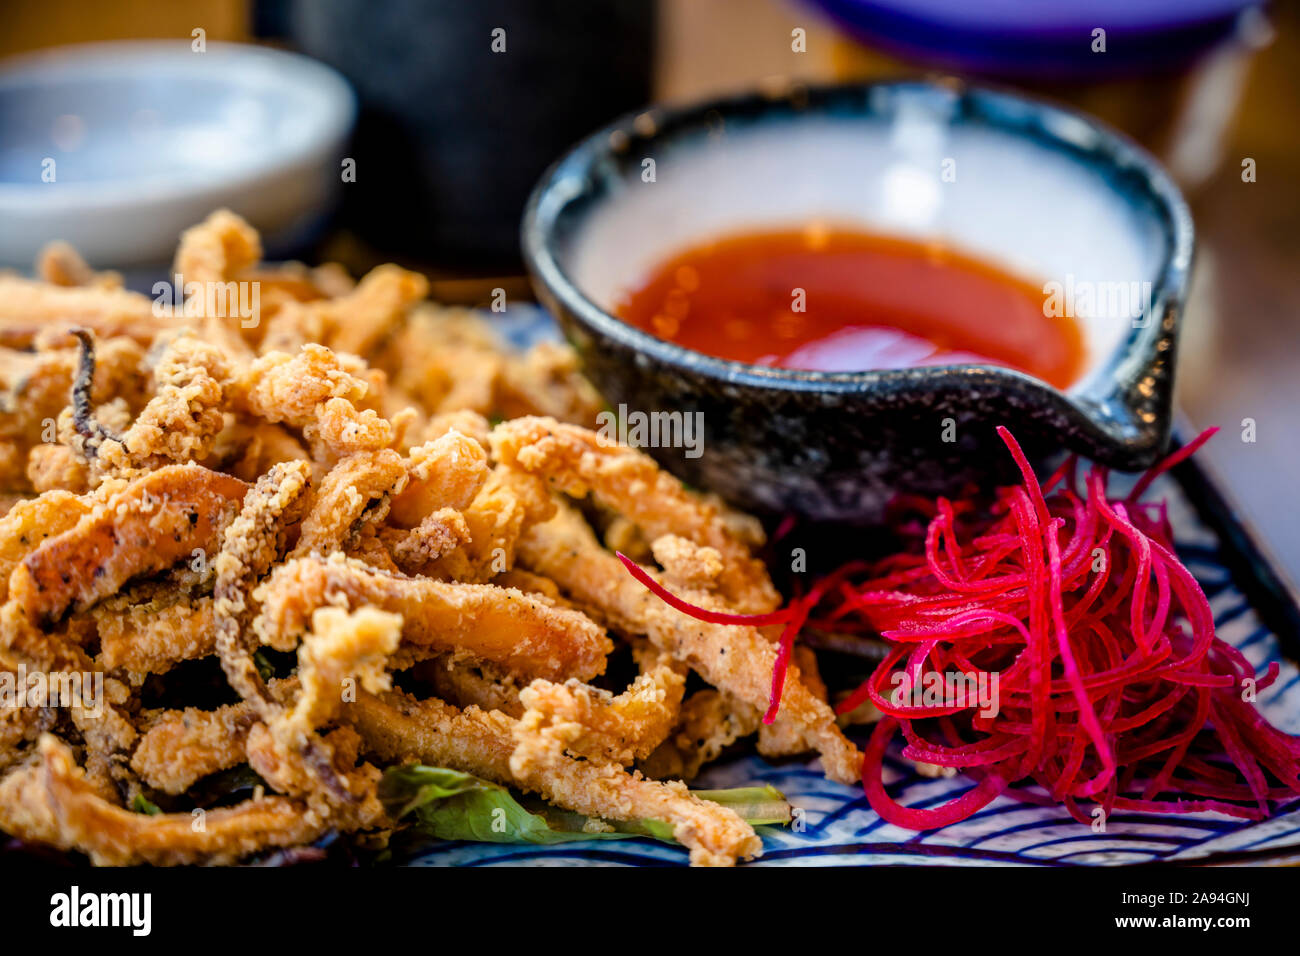 Plates with various kinds of expertly cooked fried squid with spices and hot sauces are displayed on dining table to enjoy delicious and dietary natur Stock Photo